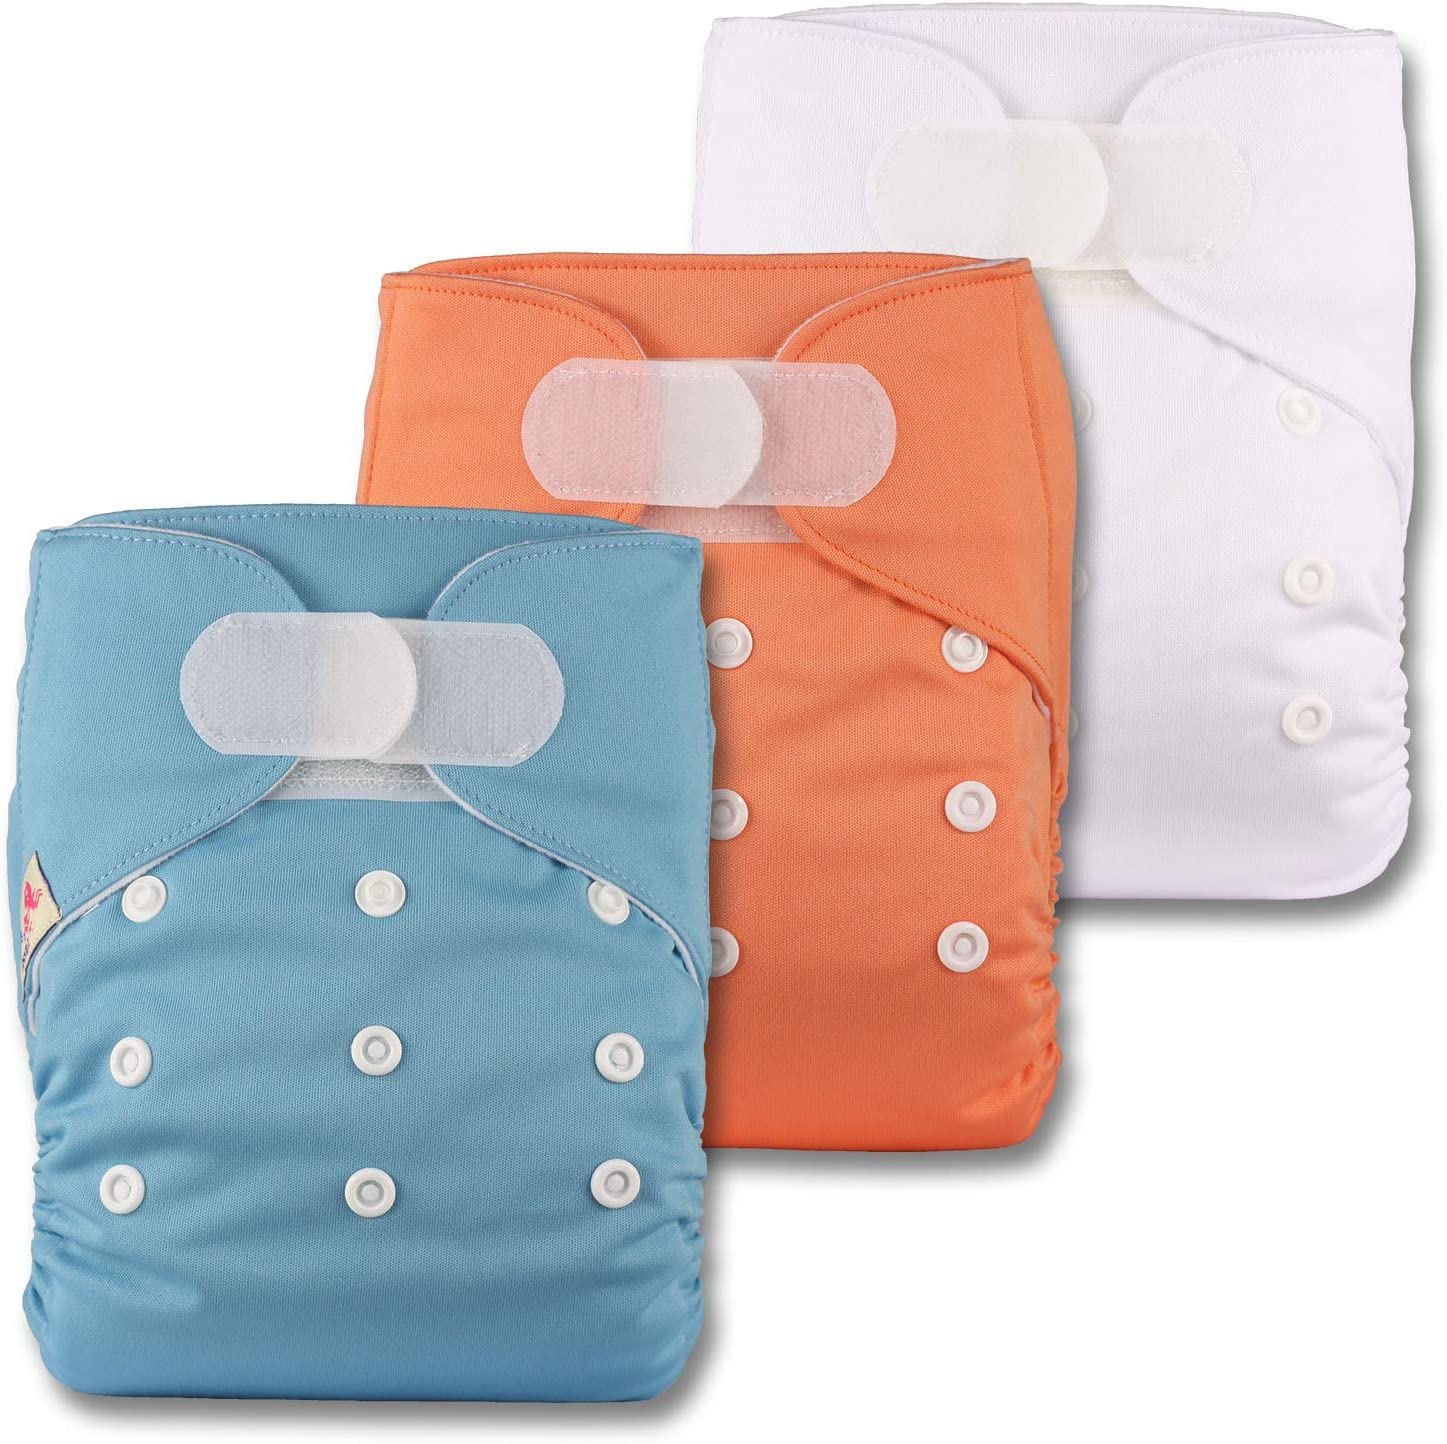 with 3 Bamboo Inserts Patterns 325 Set of 3 Reusable Pocket Cloth Nappy Fastener: Hook-Loop Littles /& Bloomz